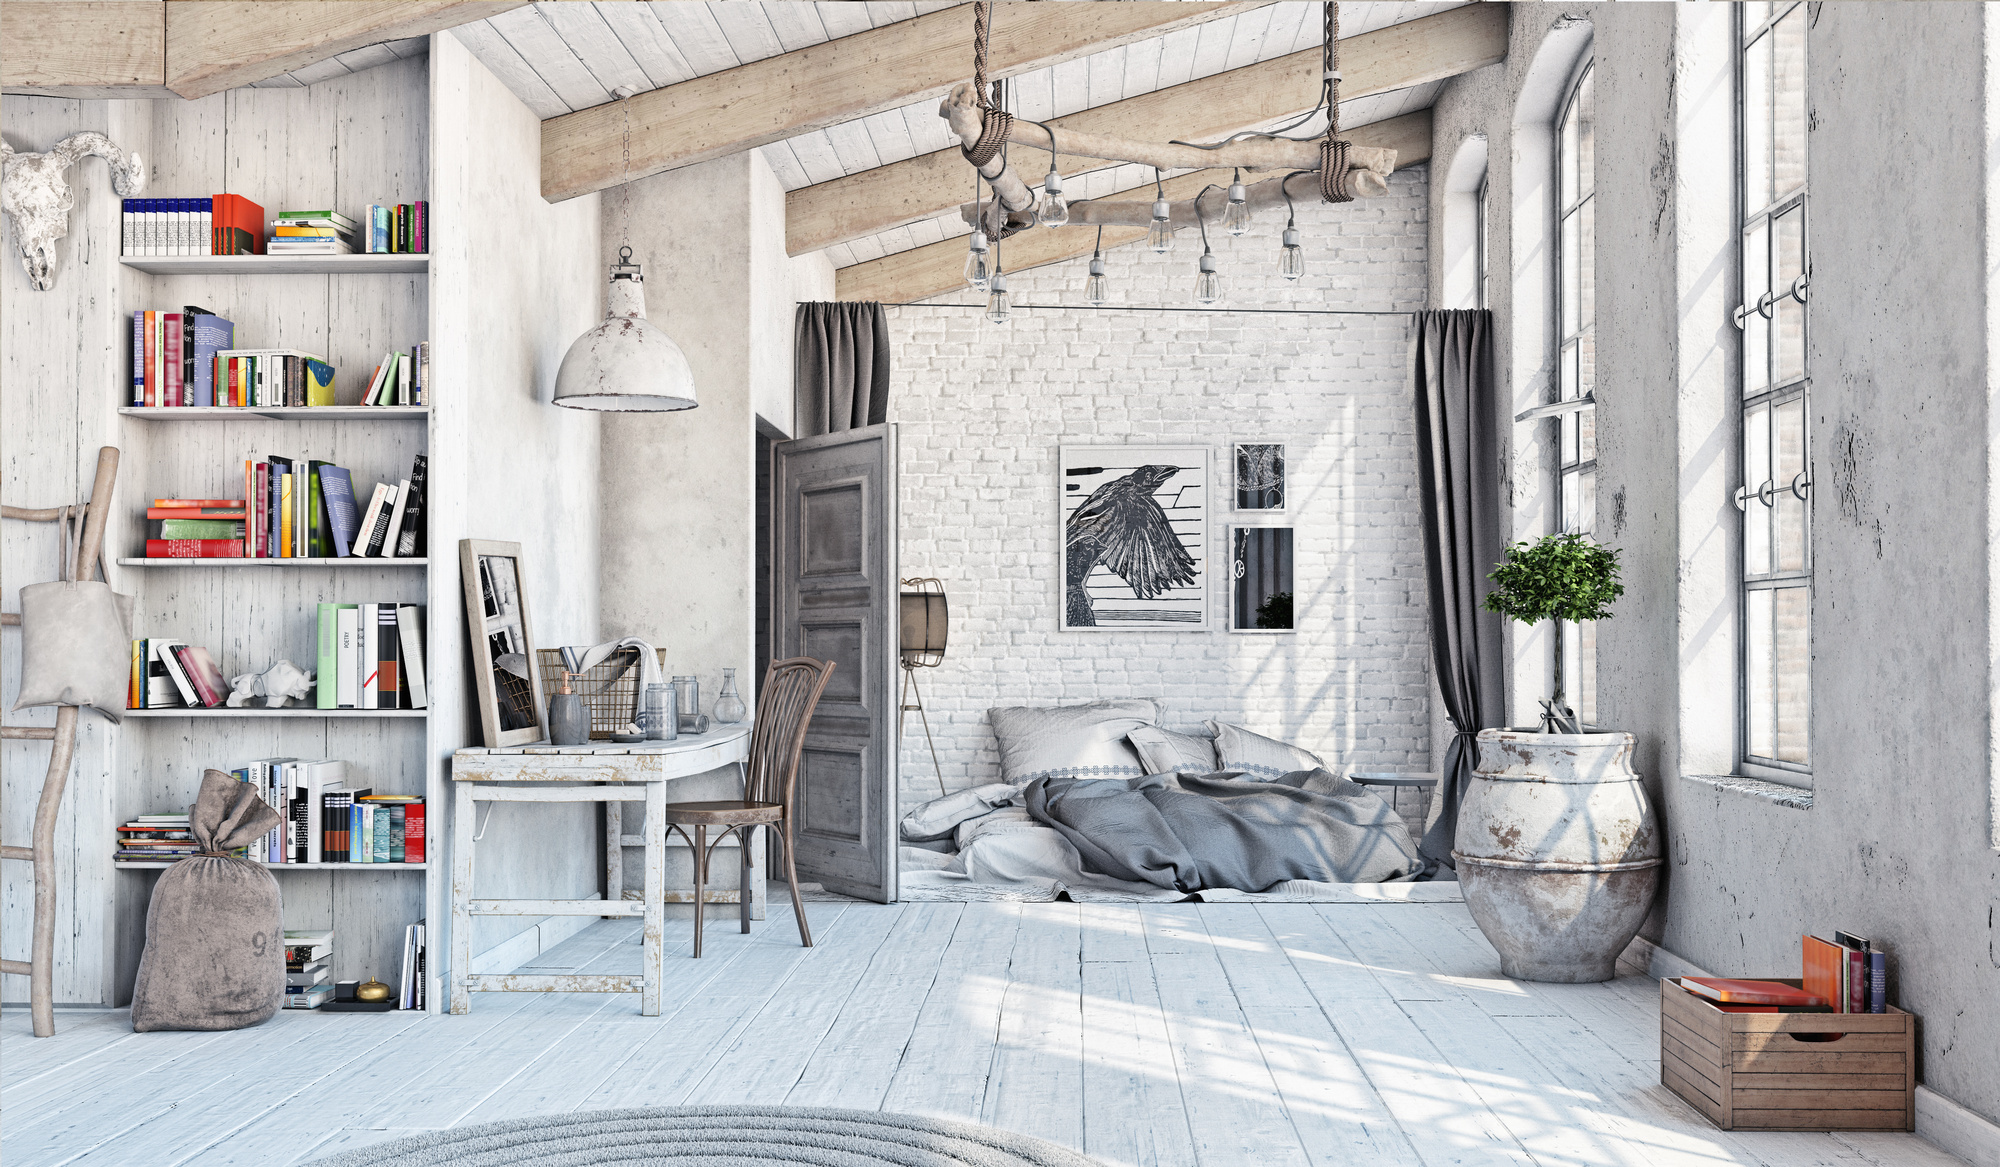 scandinavian style interior bedroom attic 3d rendering love that perfectly unkempt shabby chic - Shabby Chic Rooms Photos